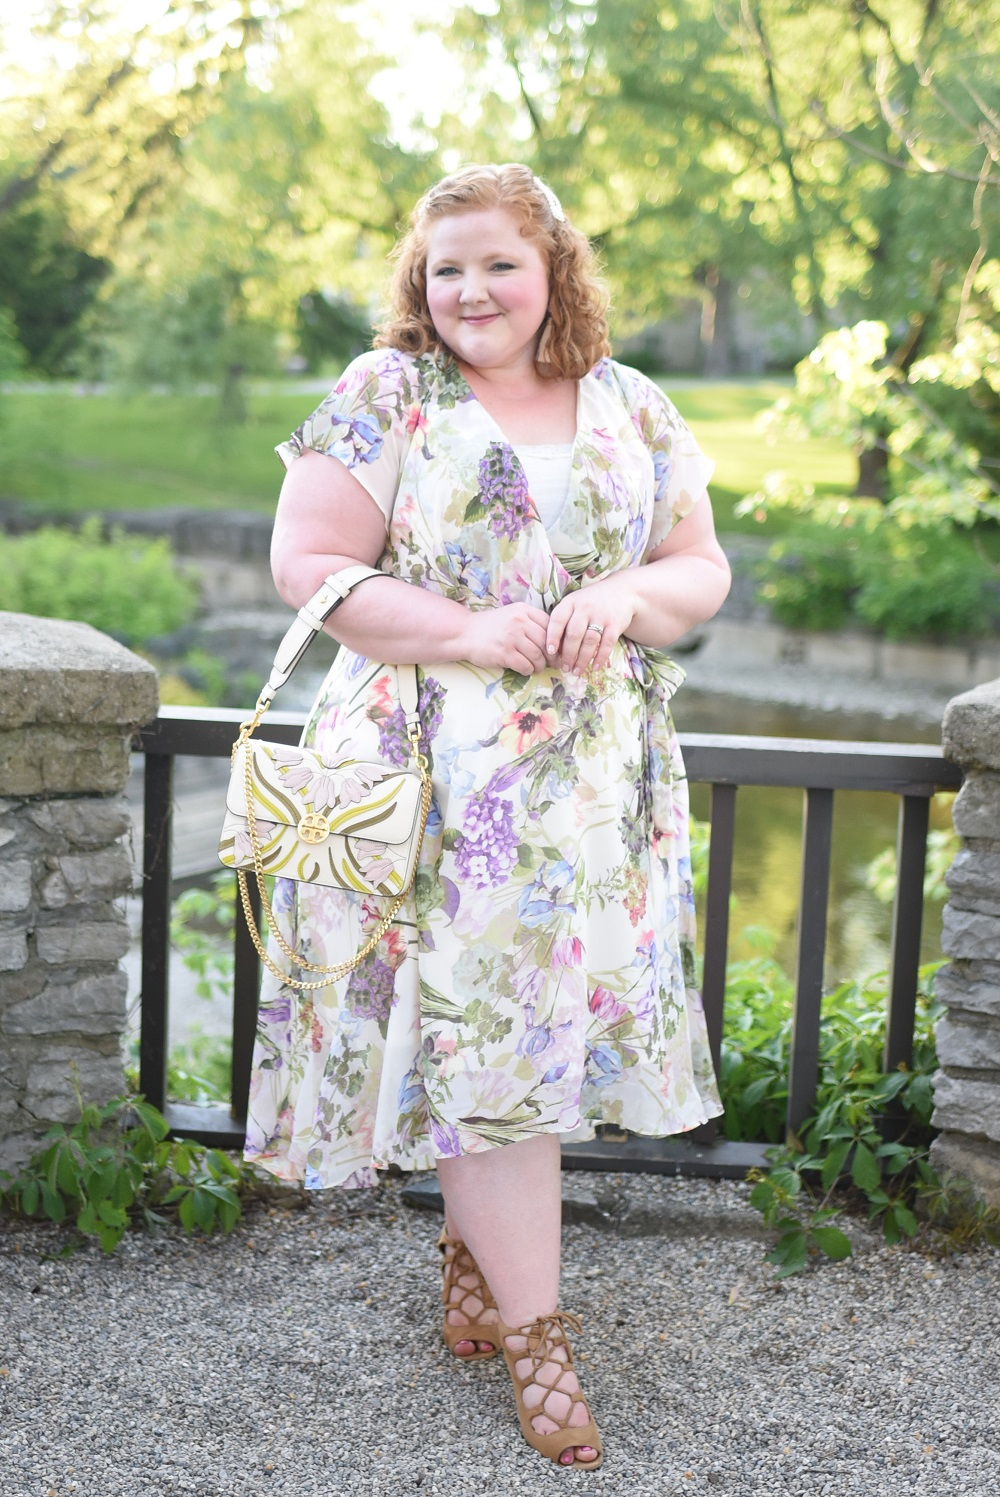 15 Outfits To Inspire Your Style This July Plus Size Patriotic Outfit Ideas In Red White And Blue Plus Su Plus Size Dresses Curvy Outfits Plus Size Outfits [ 1497 x 1000 Pixel ]